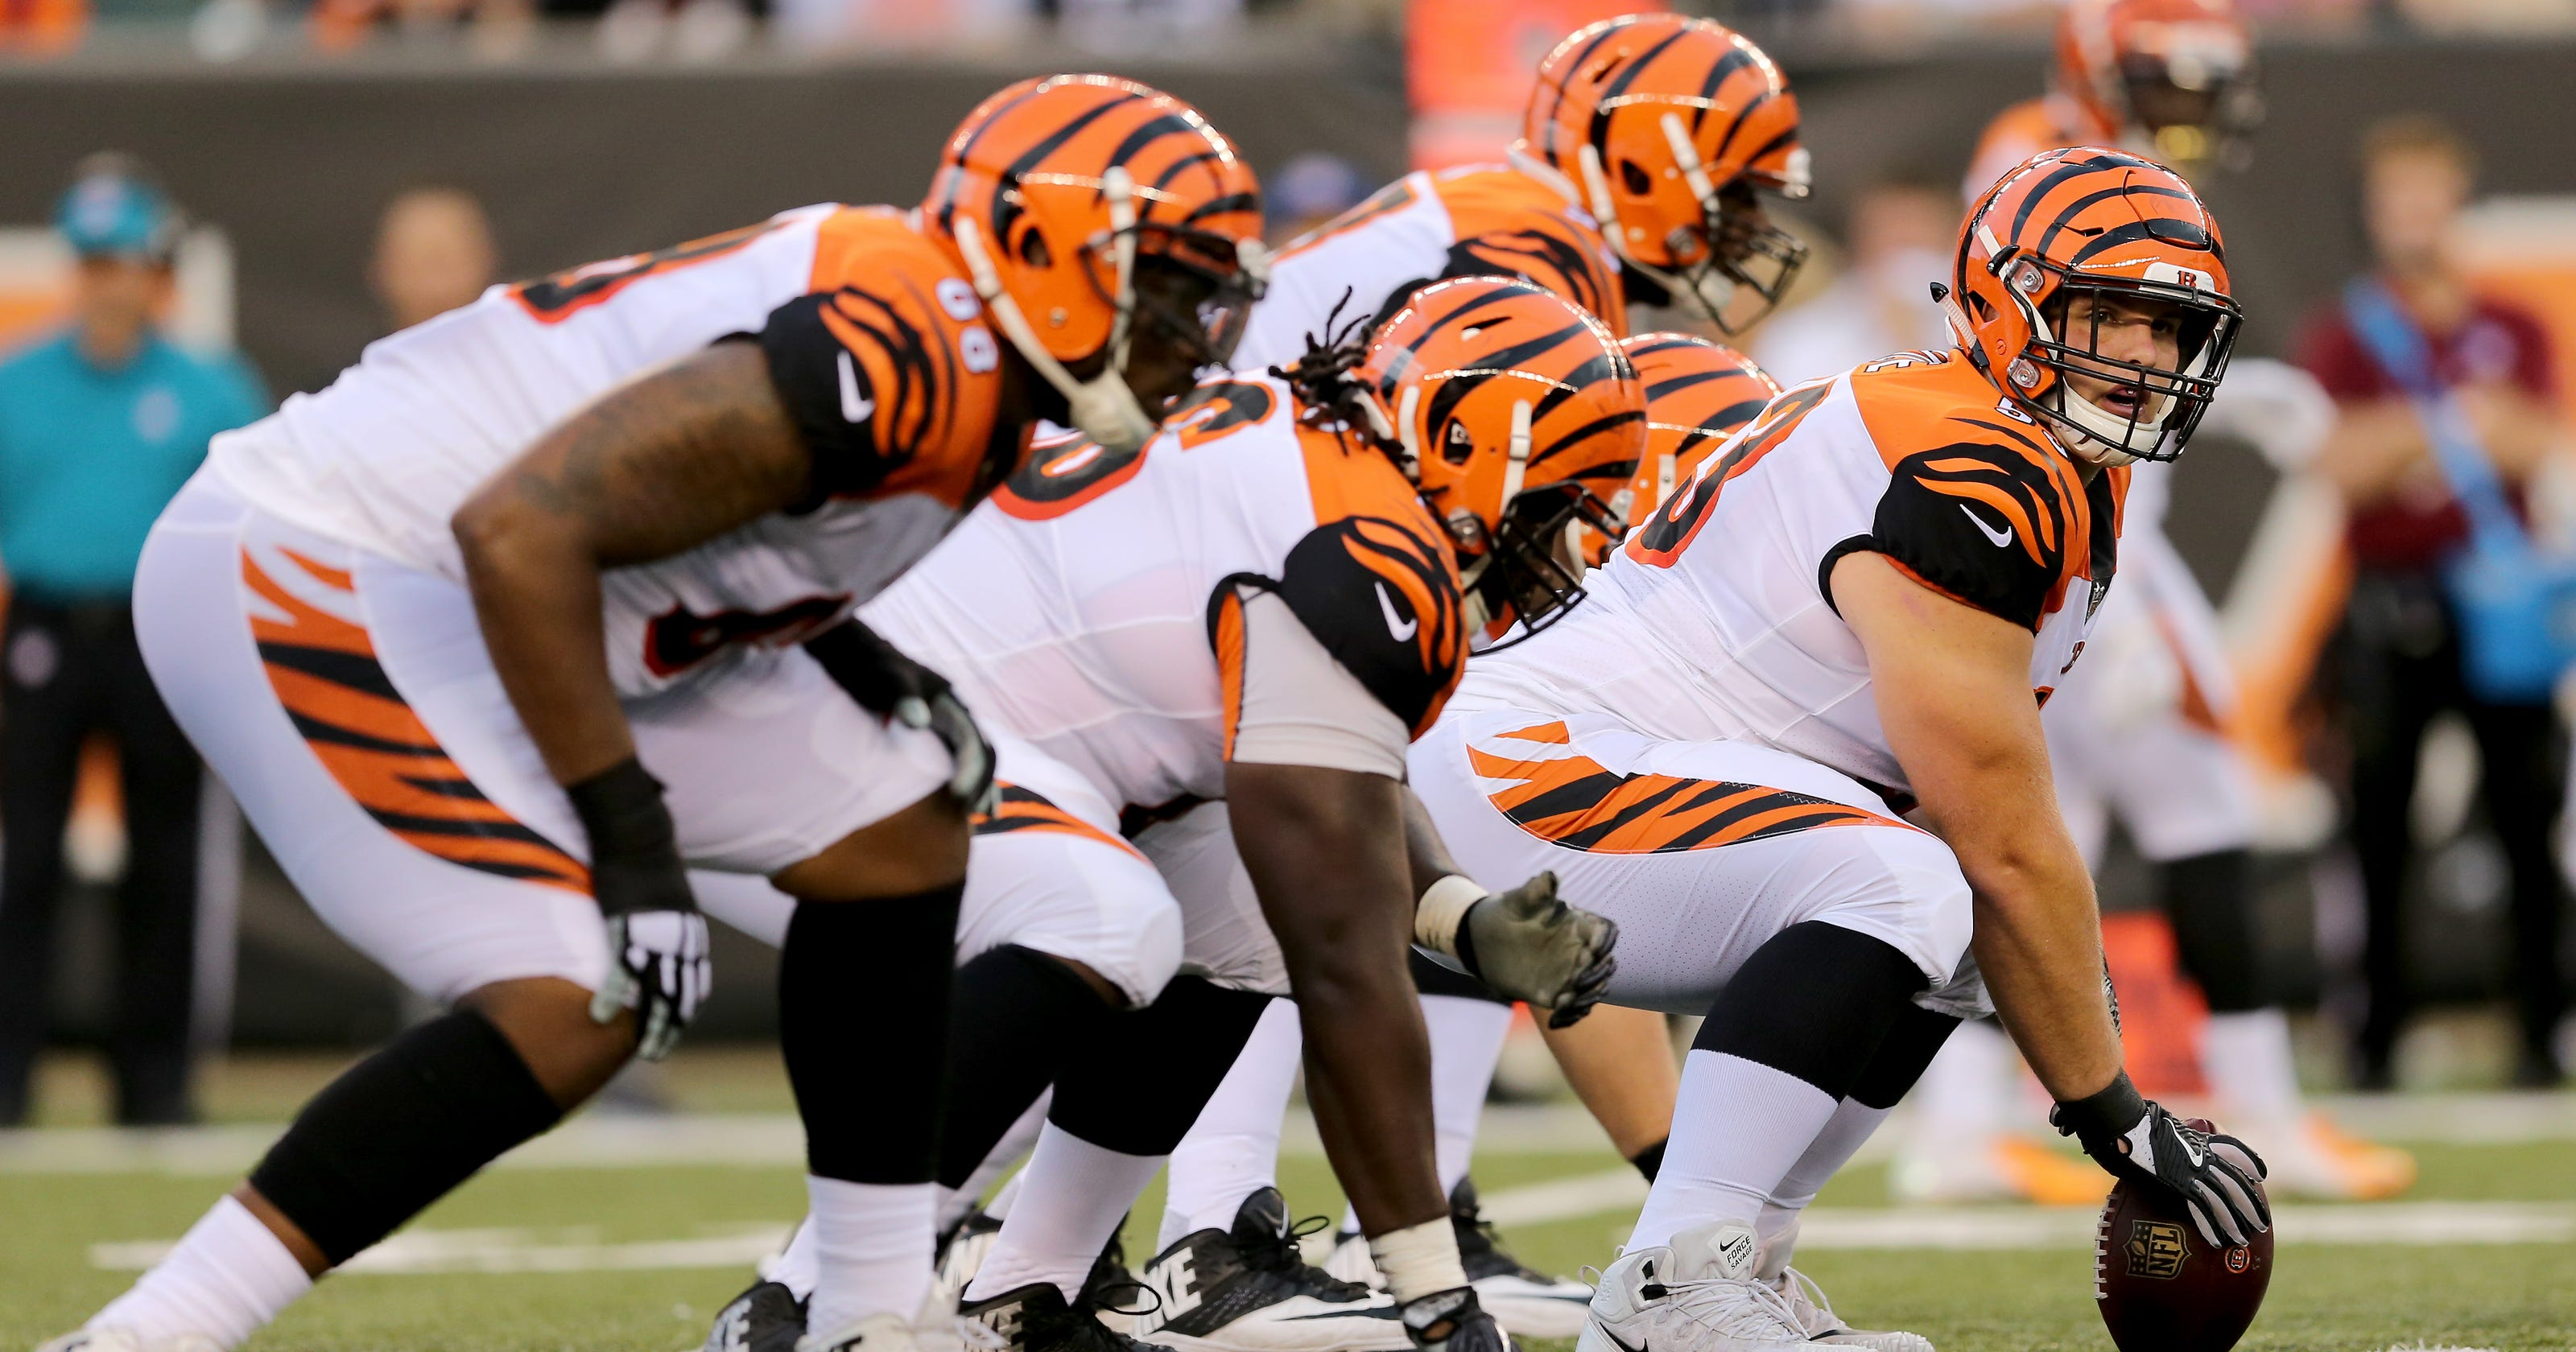 f18a54f5 NFL Preseason Week 3: Cincinnati Bengals vs. New York Giants preview